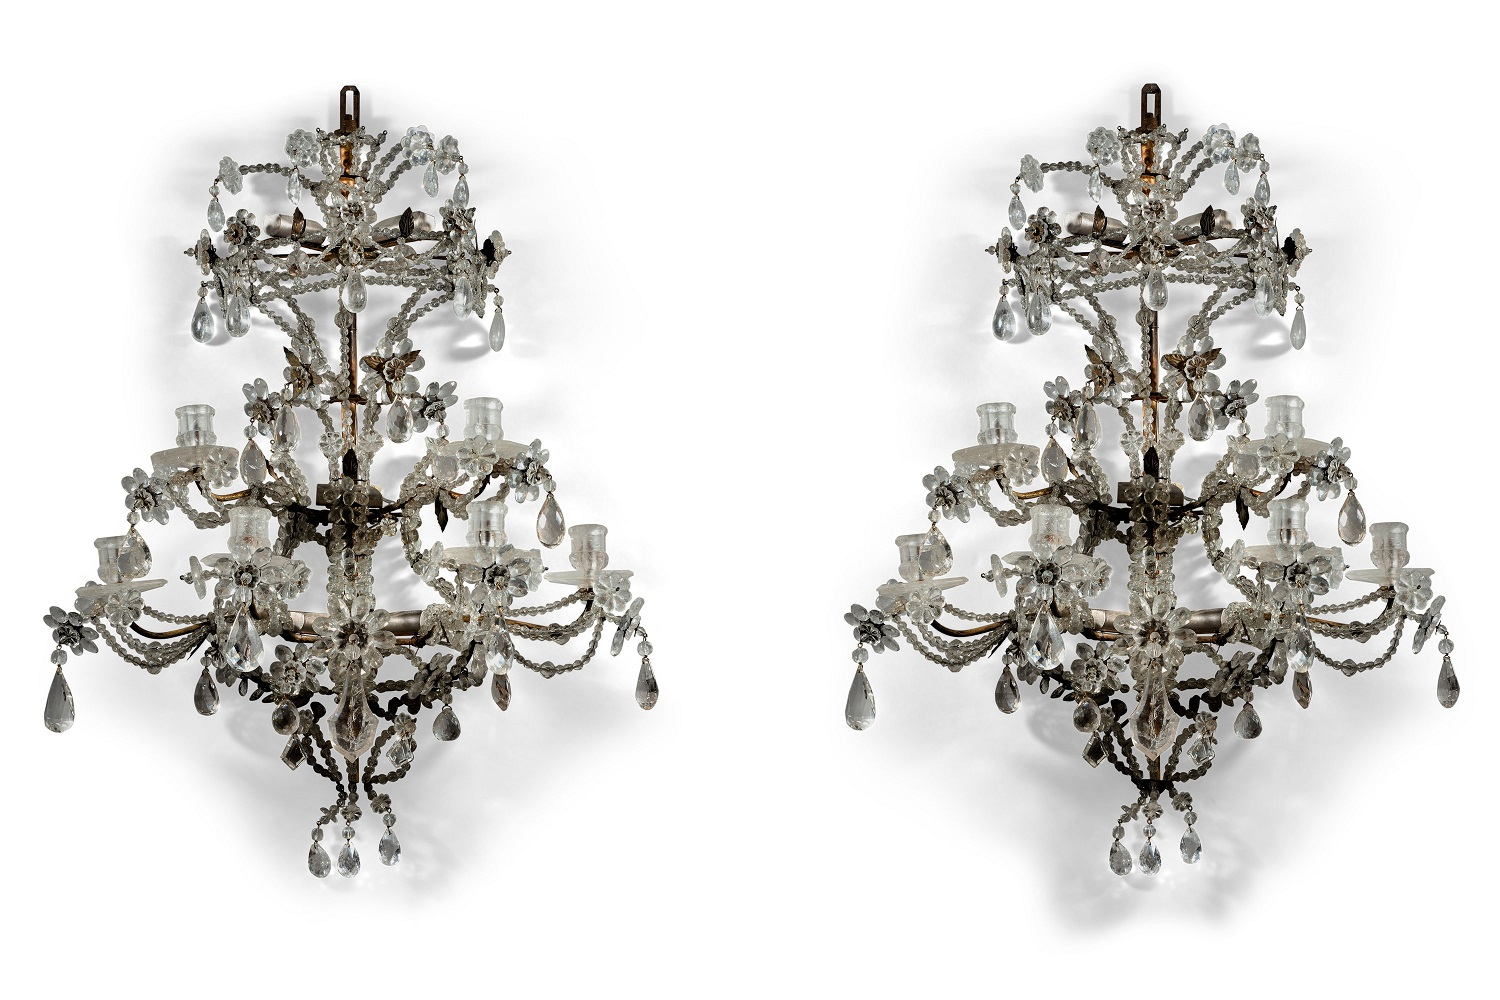 Christie's Lighting from the 18th to the 21st Century Sale